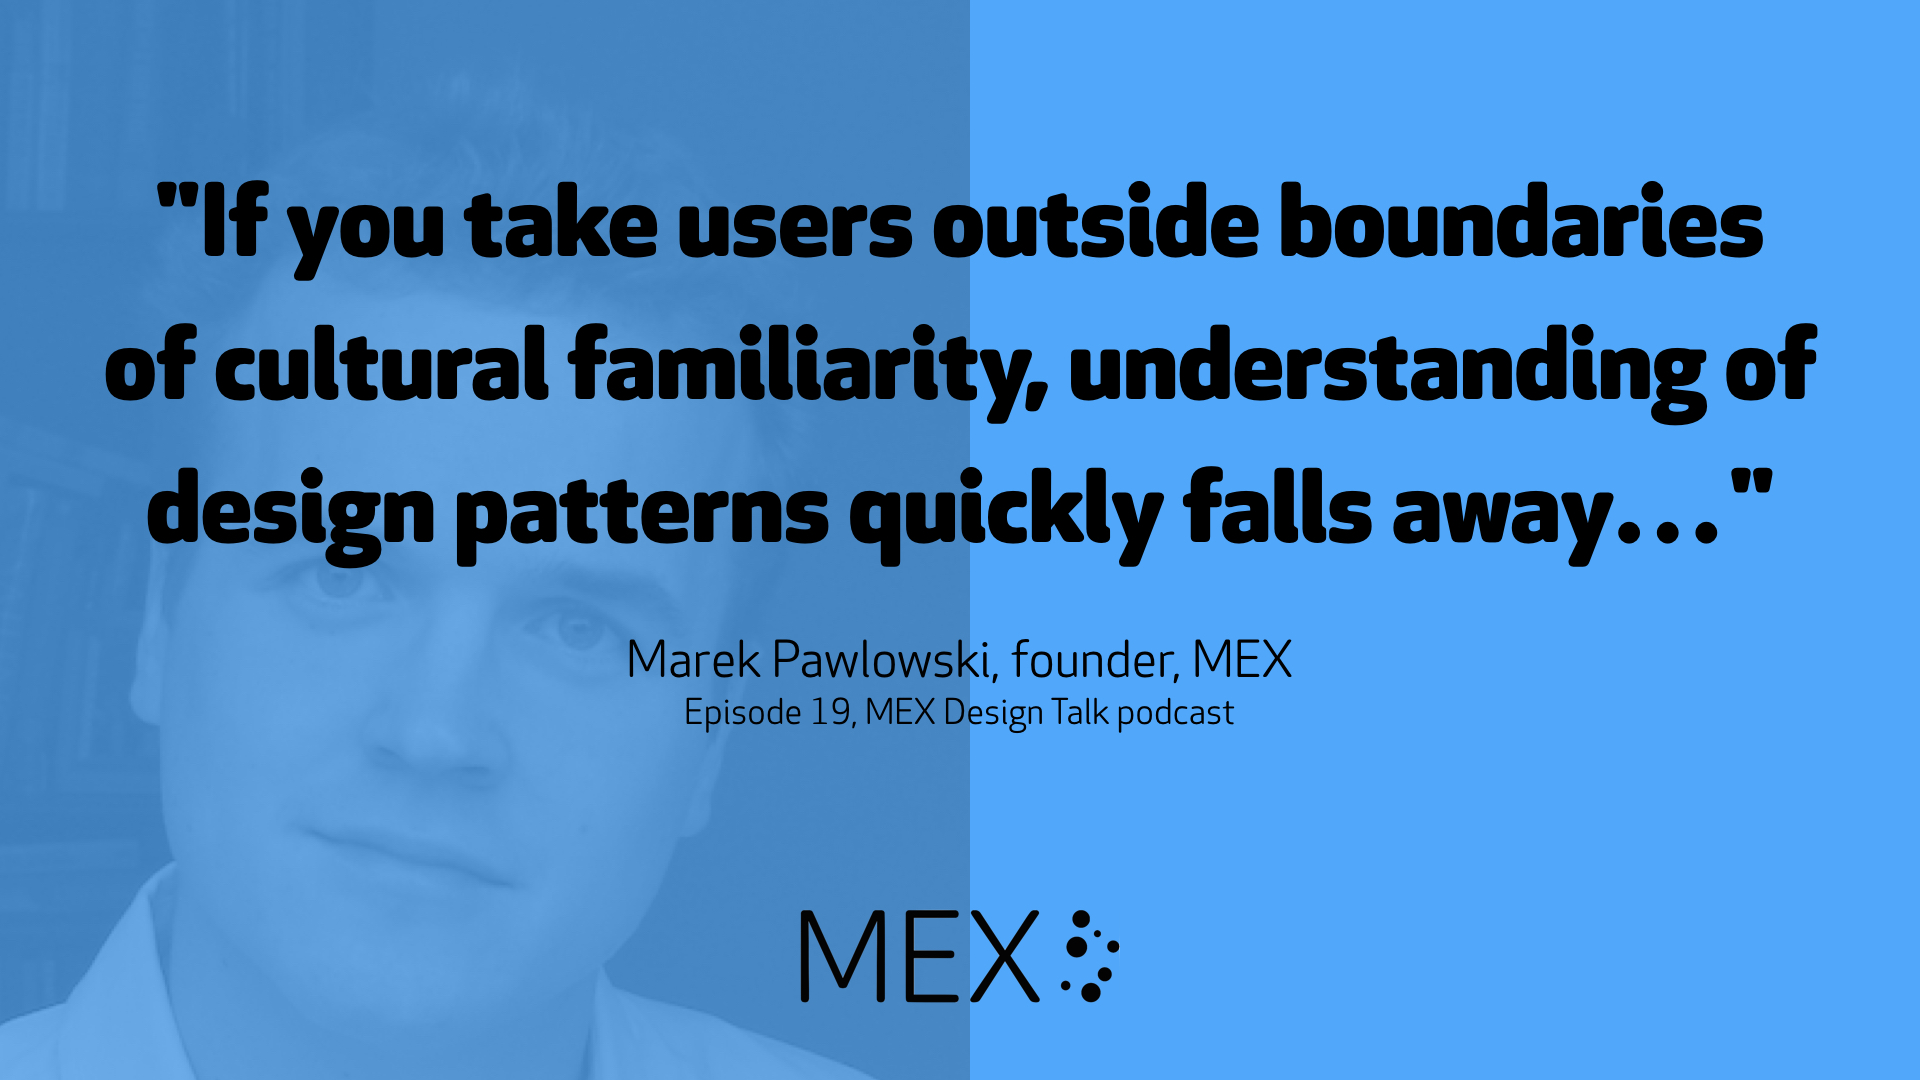 """If you take users outside boundaries of cultural familiarity, understanding of design patterns quickly falls away…"" -- Marek Pawlowski, founder, MEX, Episode 19, MEX Design Talk podcast"